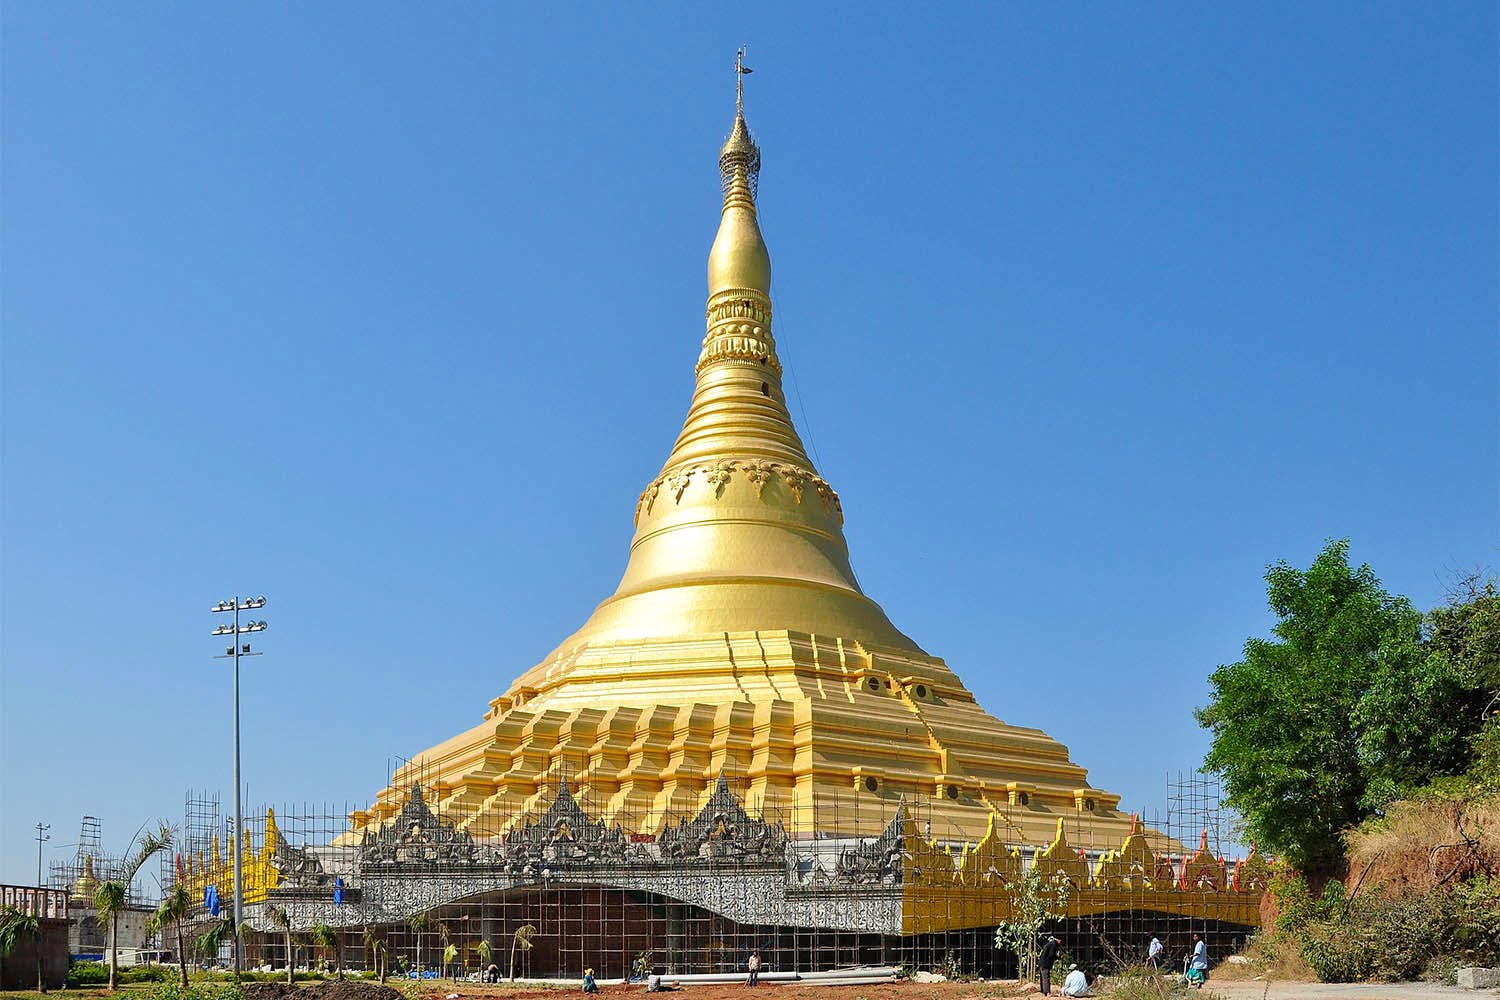 Landmark,Tower,Place of worship,Spire,Temple,Architecture,Historic site,Pagoda,Building,Stupa